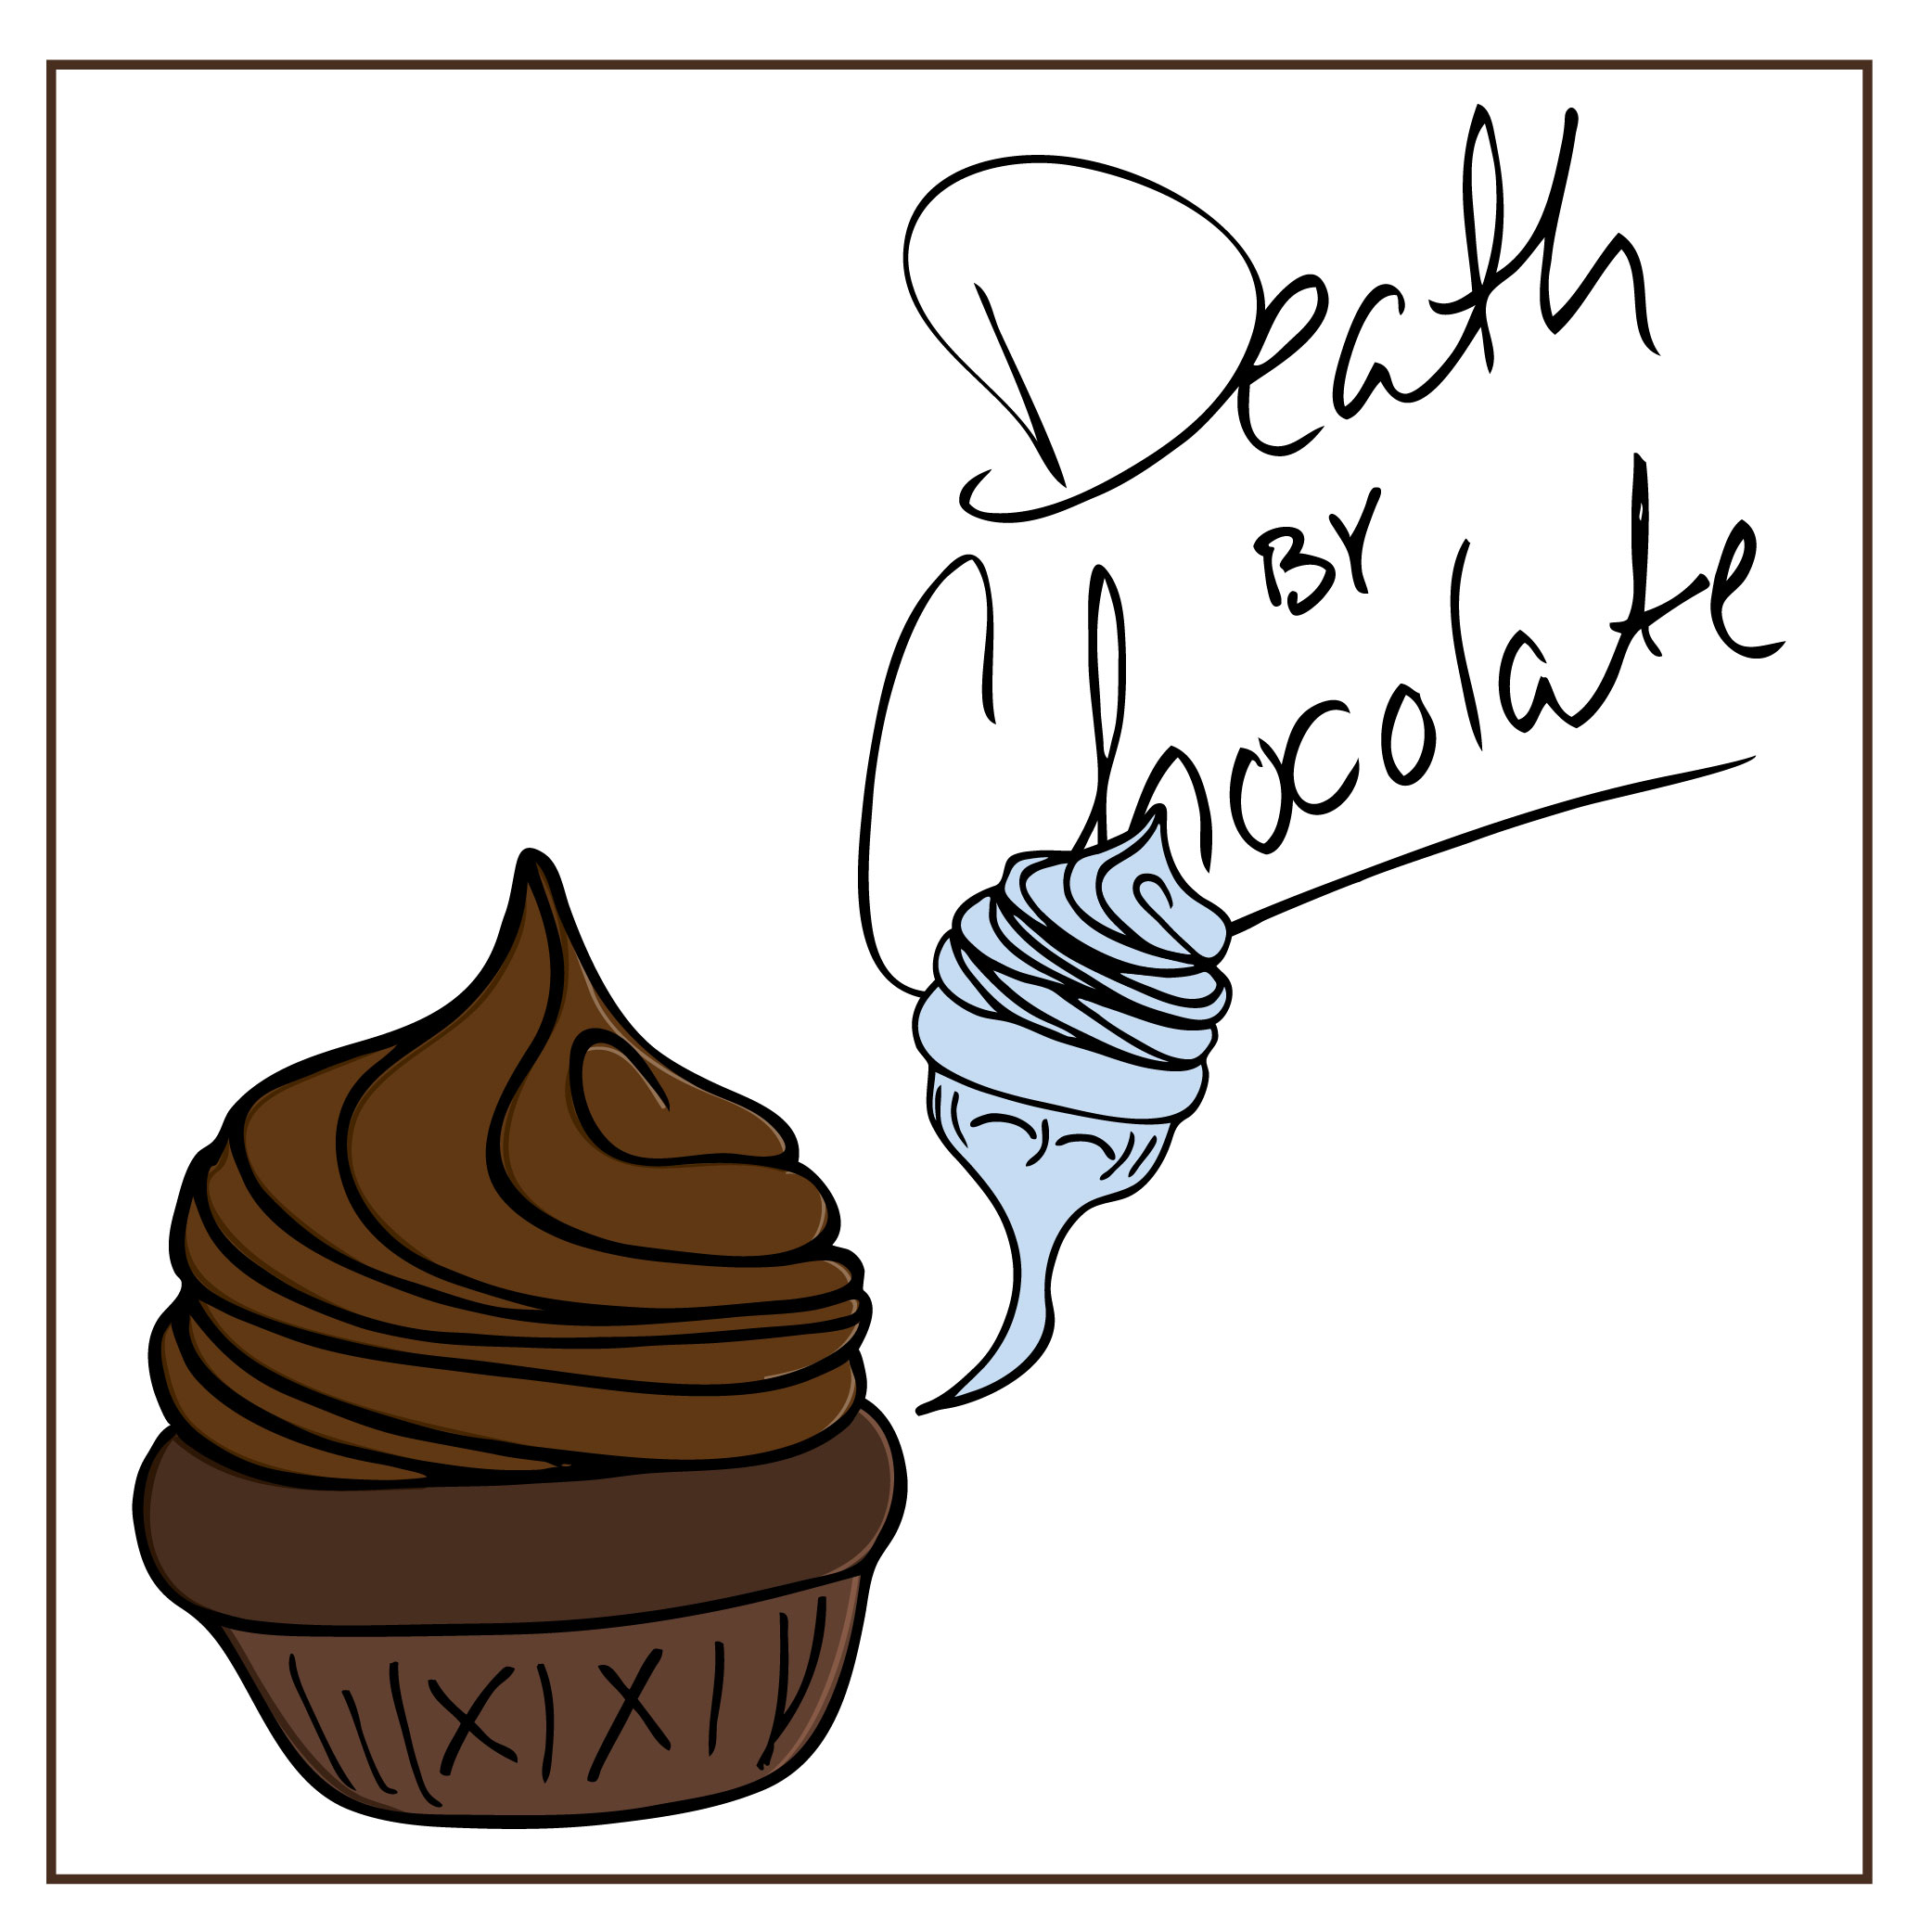 Death-By-Chocolate-Squared-01.jpg